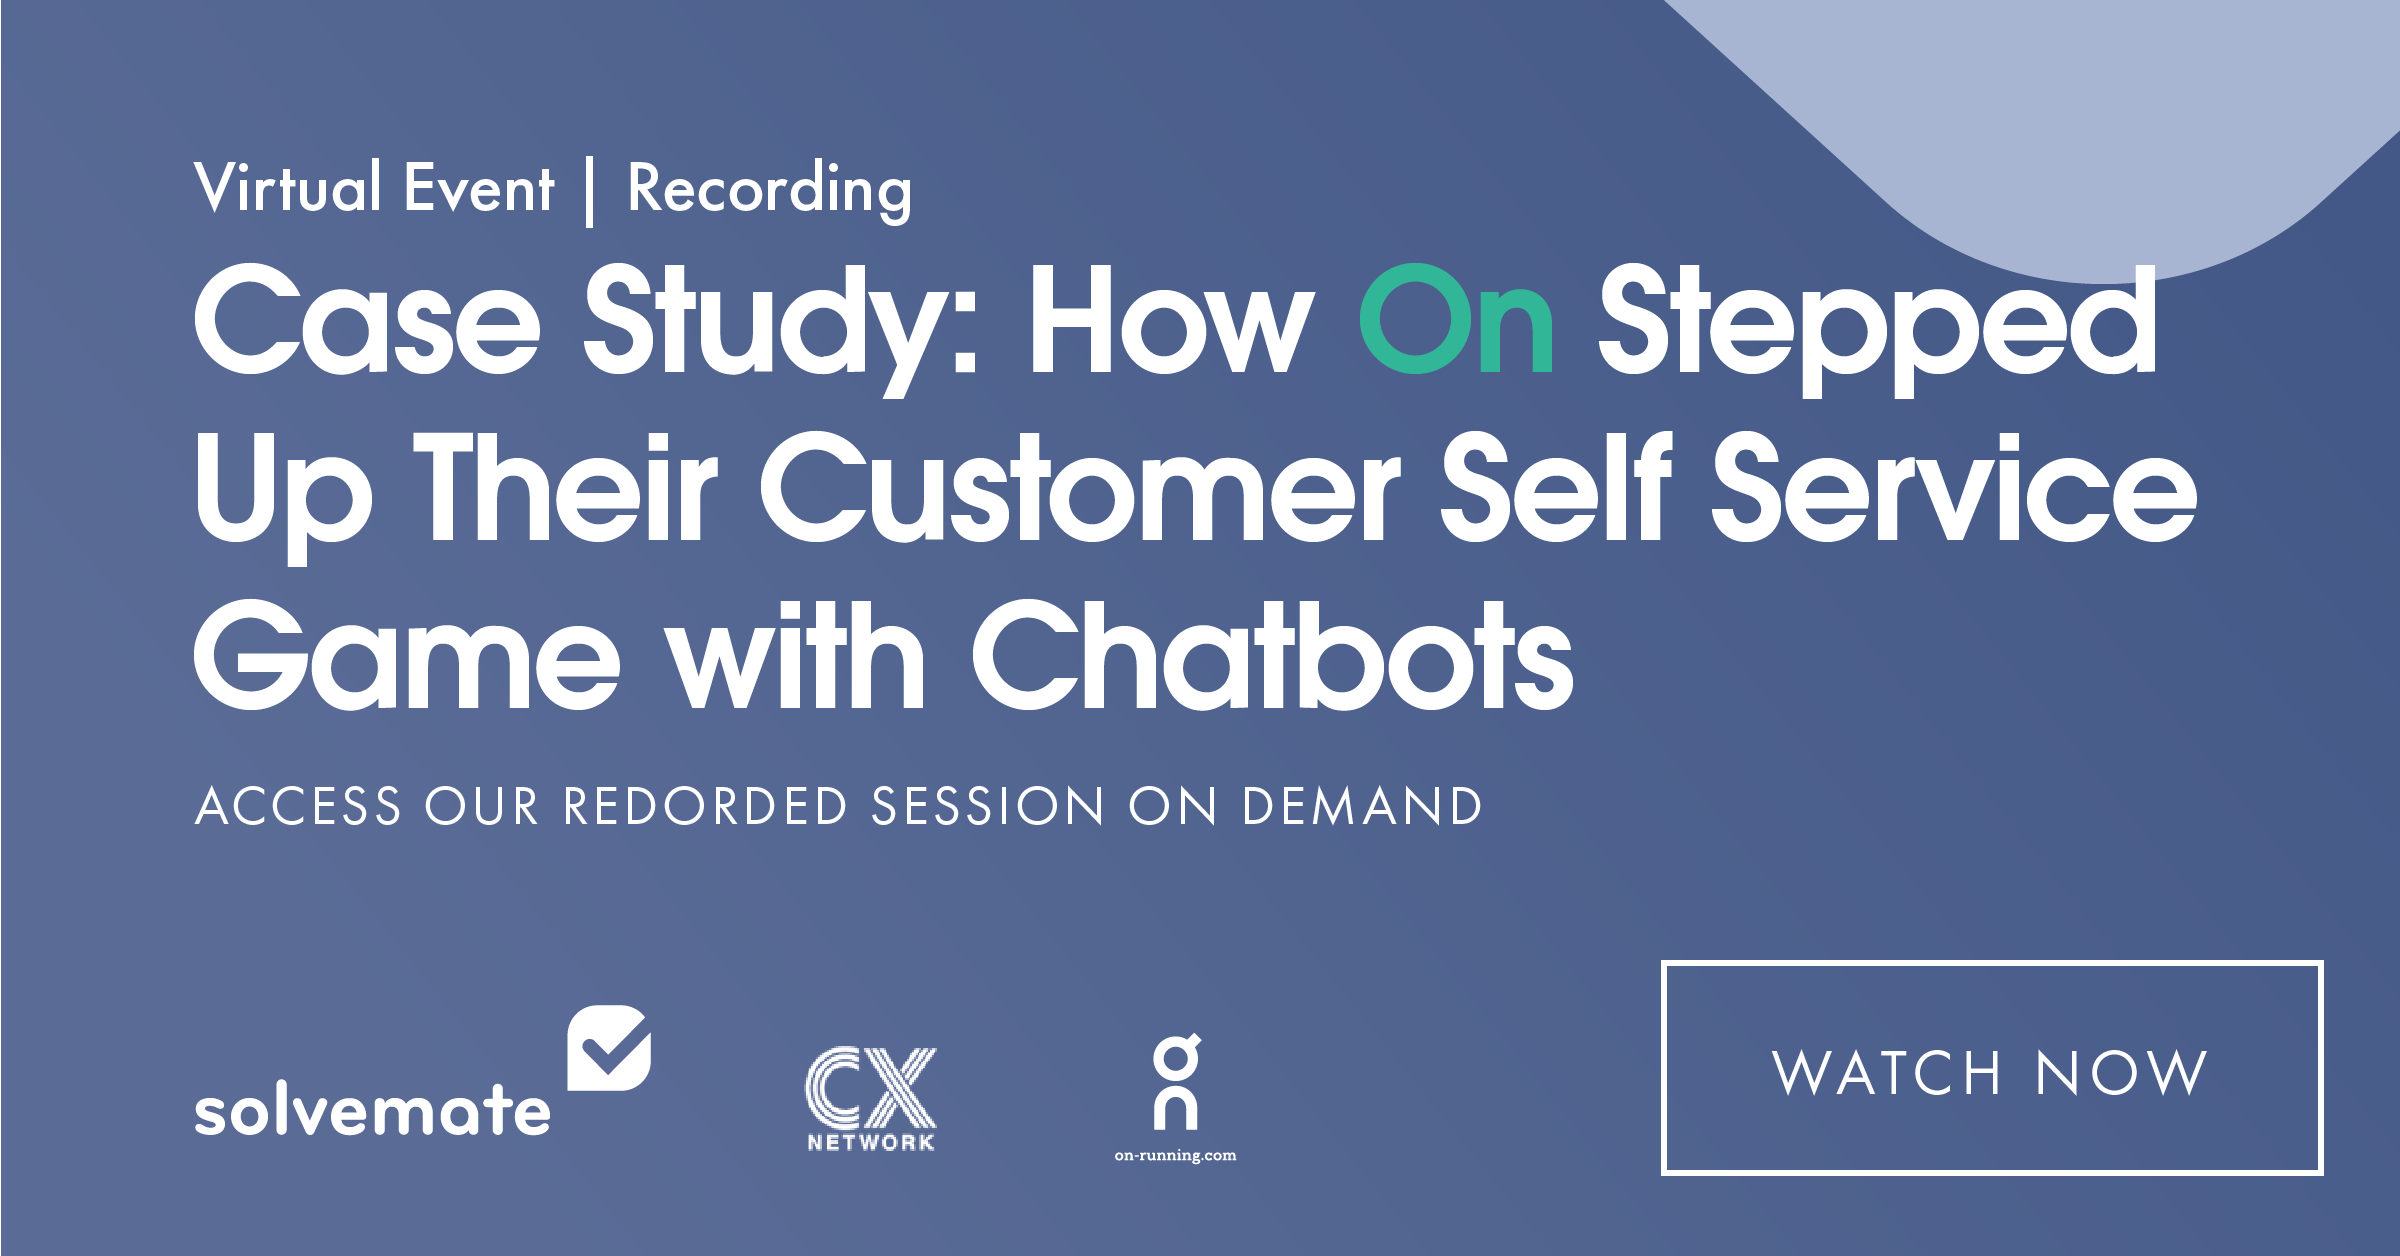 Recorded webinar with On Running about their Solvemate eCommerce chatbot experience and results.